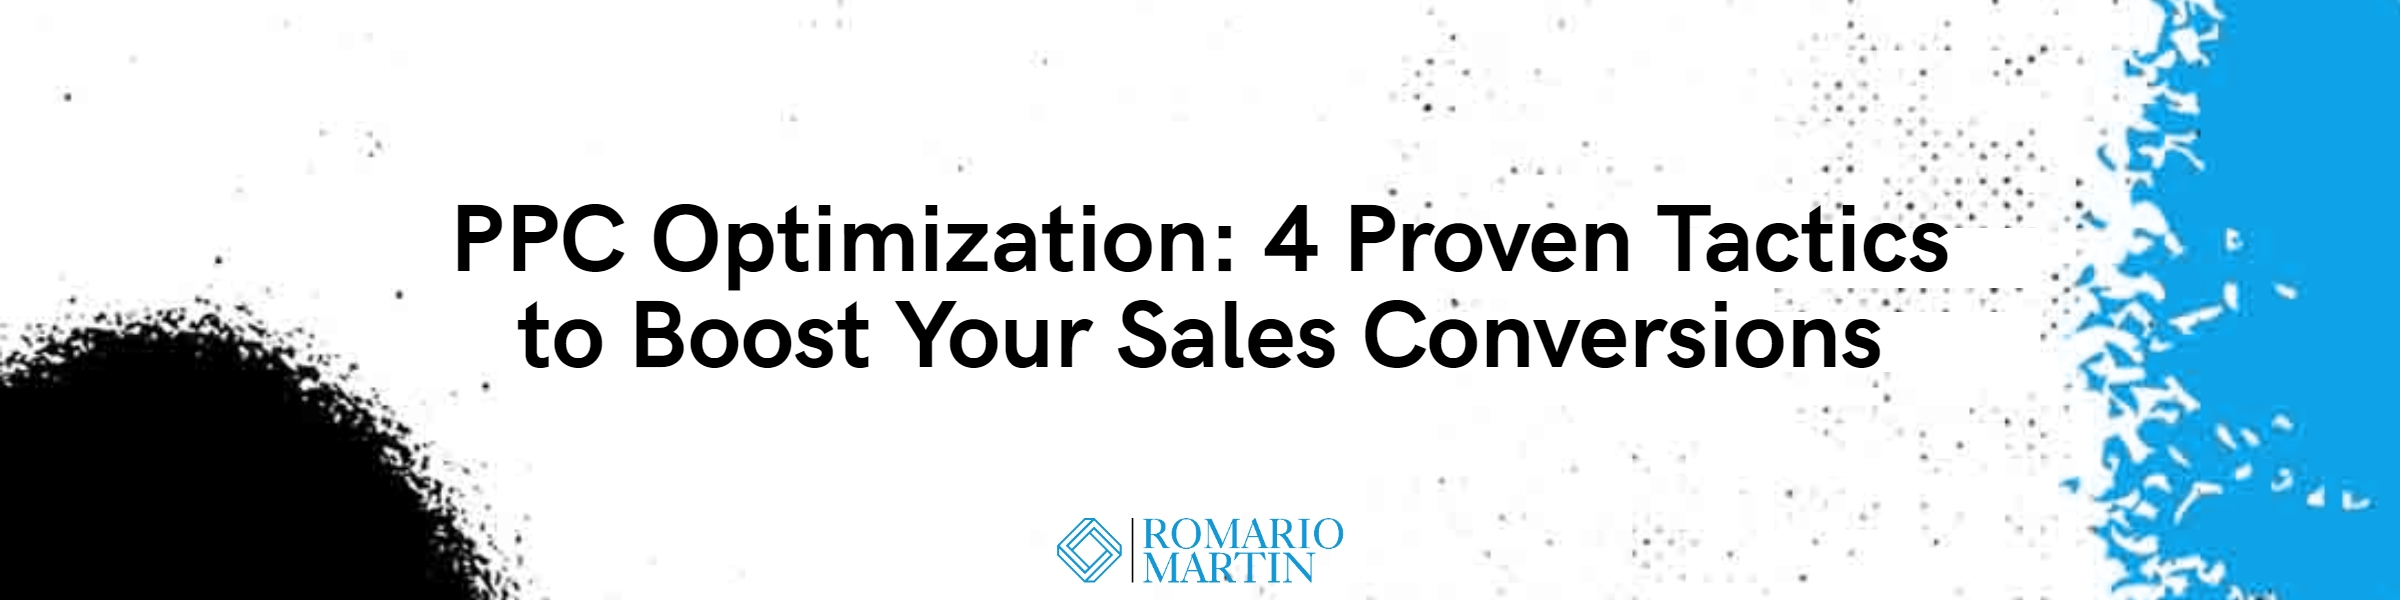 PPC Optimization: 4 Proven Tactics to Boost Your Sales Conversions